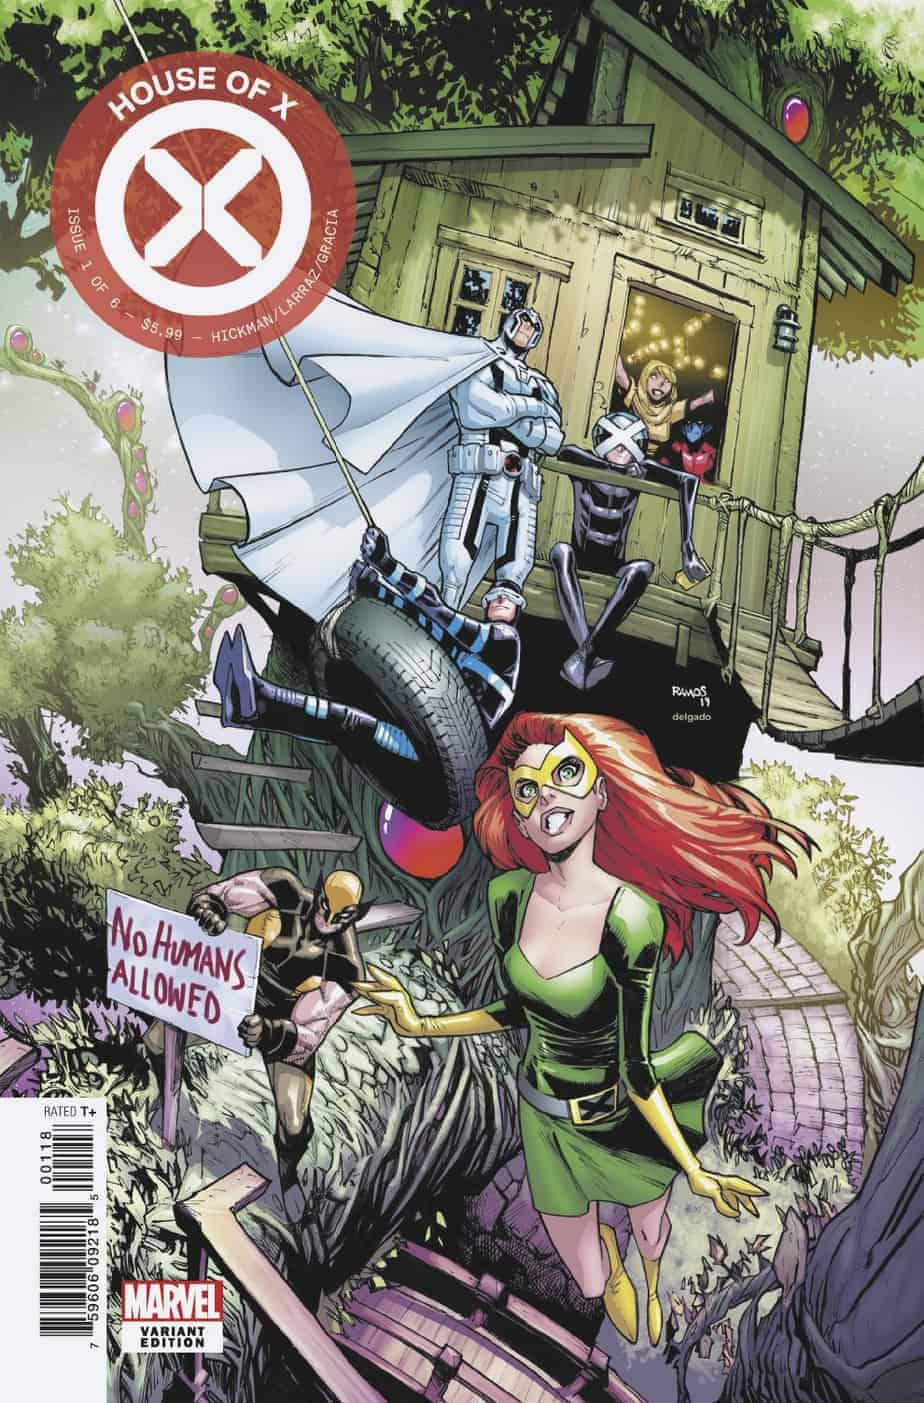 HOUSE OF X #1 - Cover K